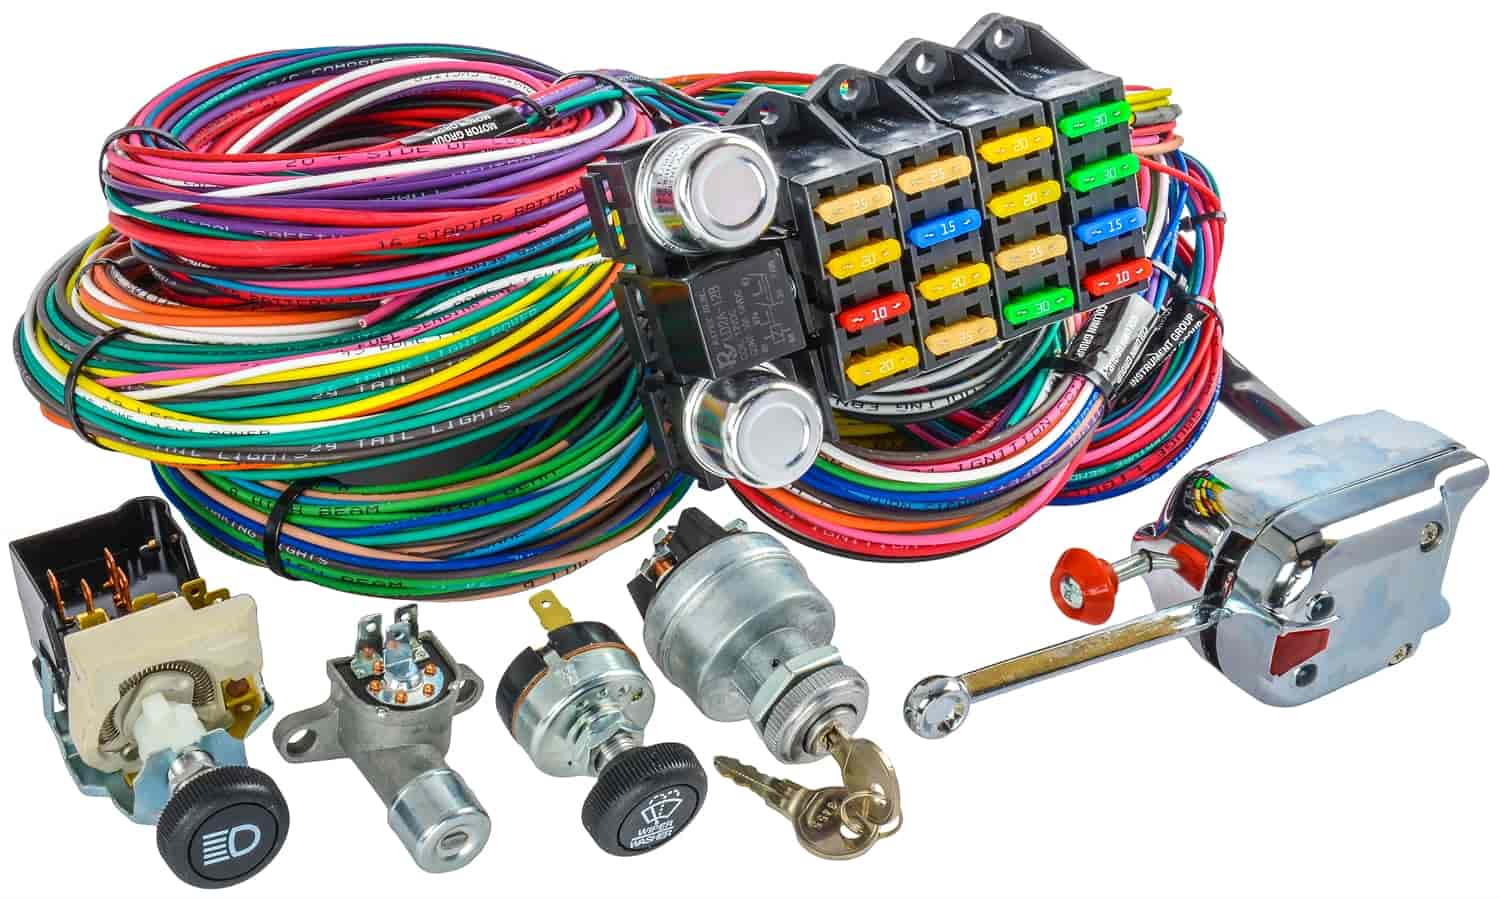 jegs 10405k universal wiring harness switch kit 20 circuit jegs rh jegs com universal motorcycle wiring harness kit Ford Wiring Harness Kits